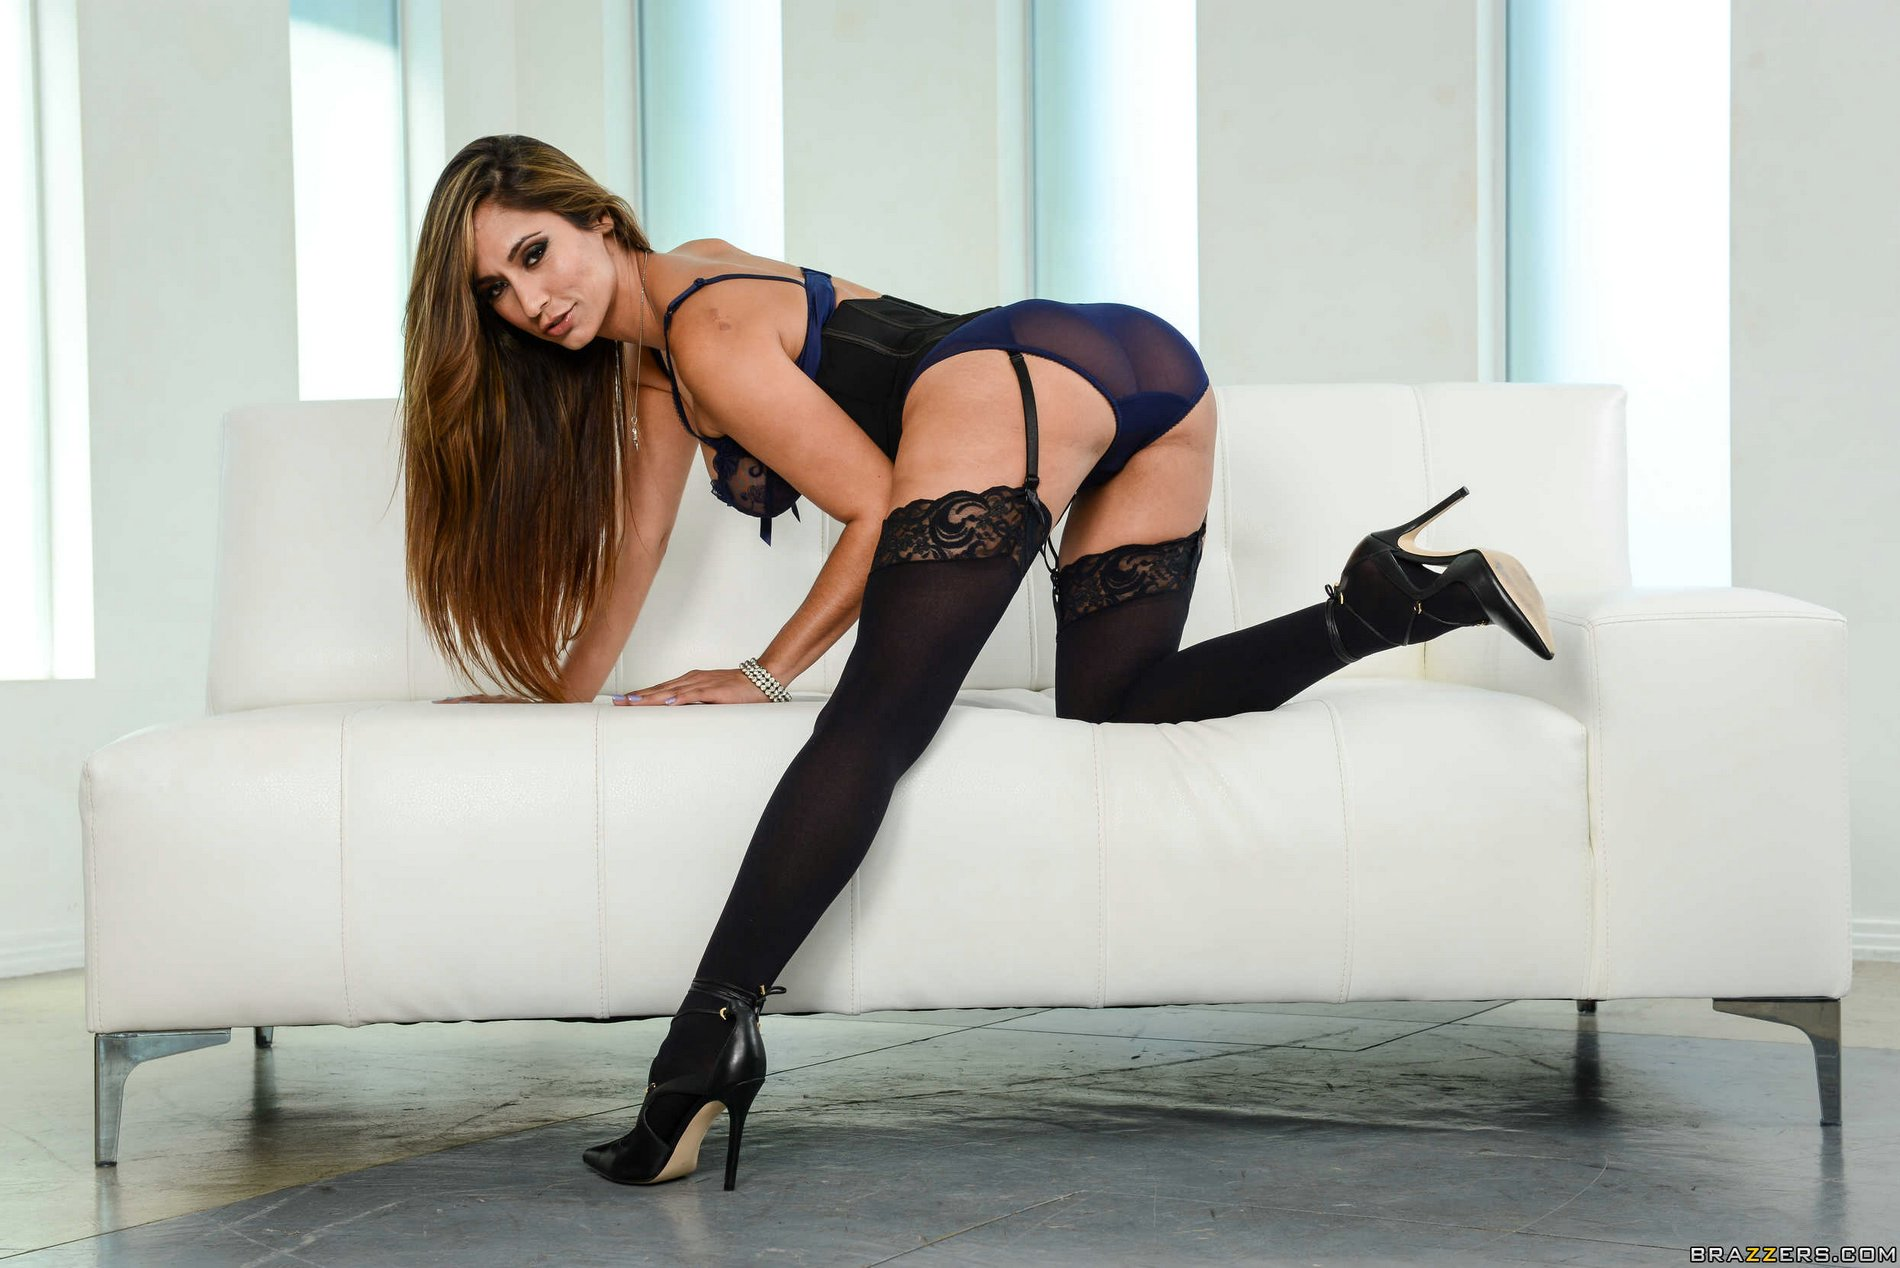 Nylons and highheels